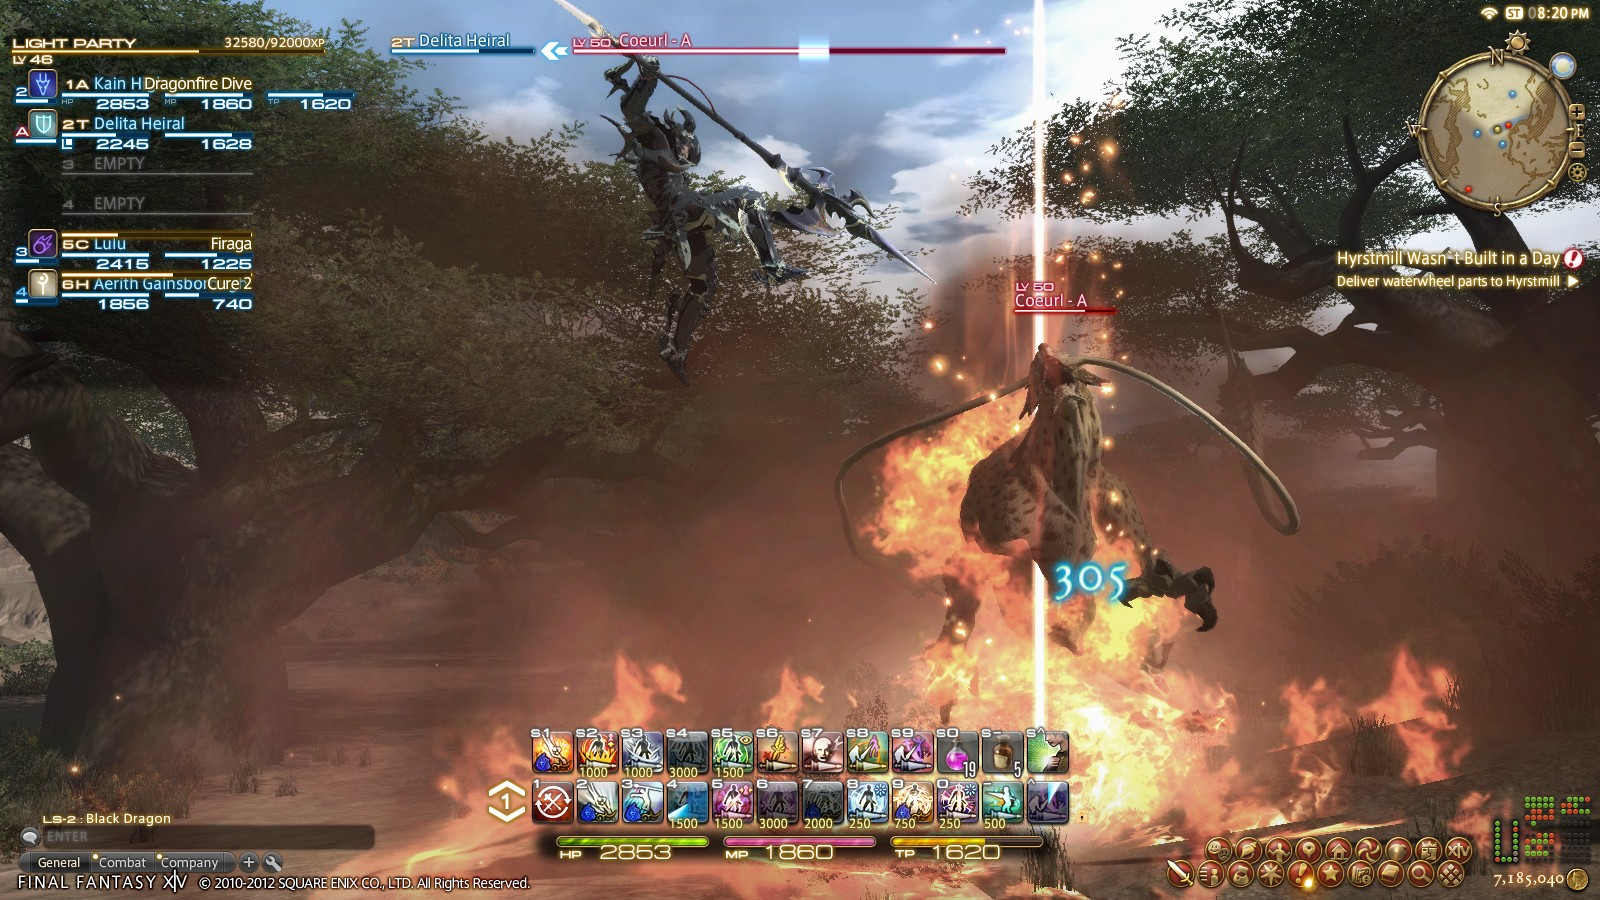 4fceb555_Final-Fantasy-XIV-2.0-Battle-Screenshot-2